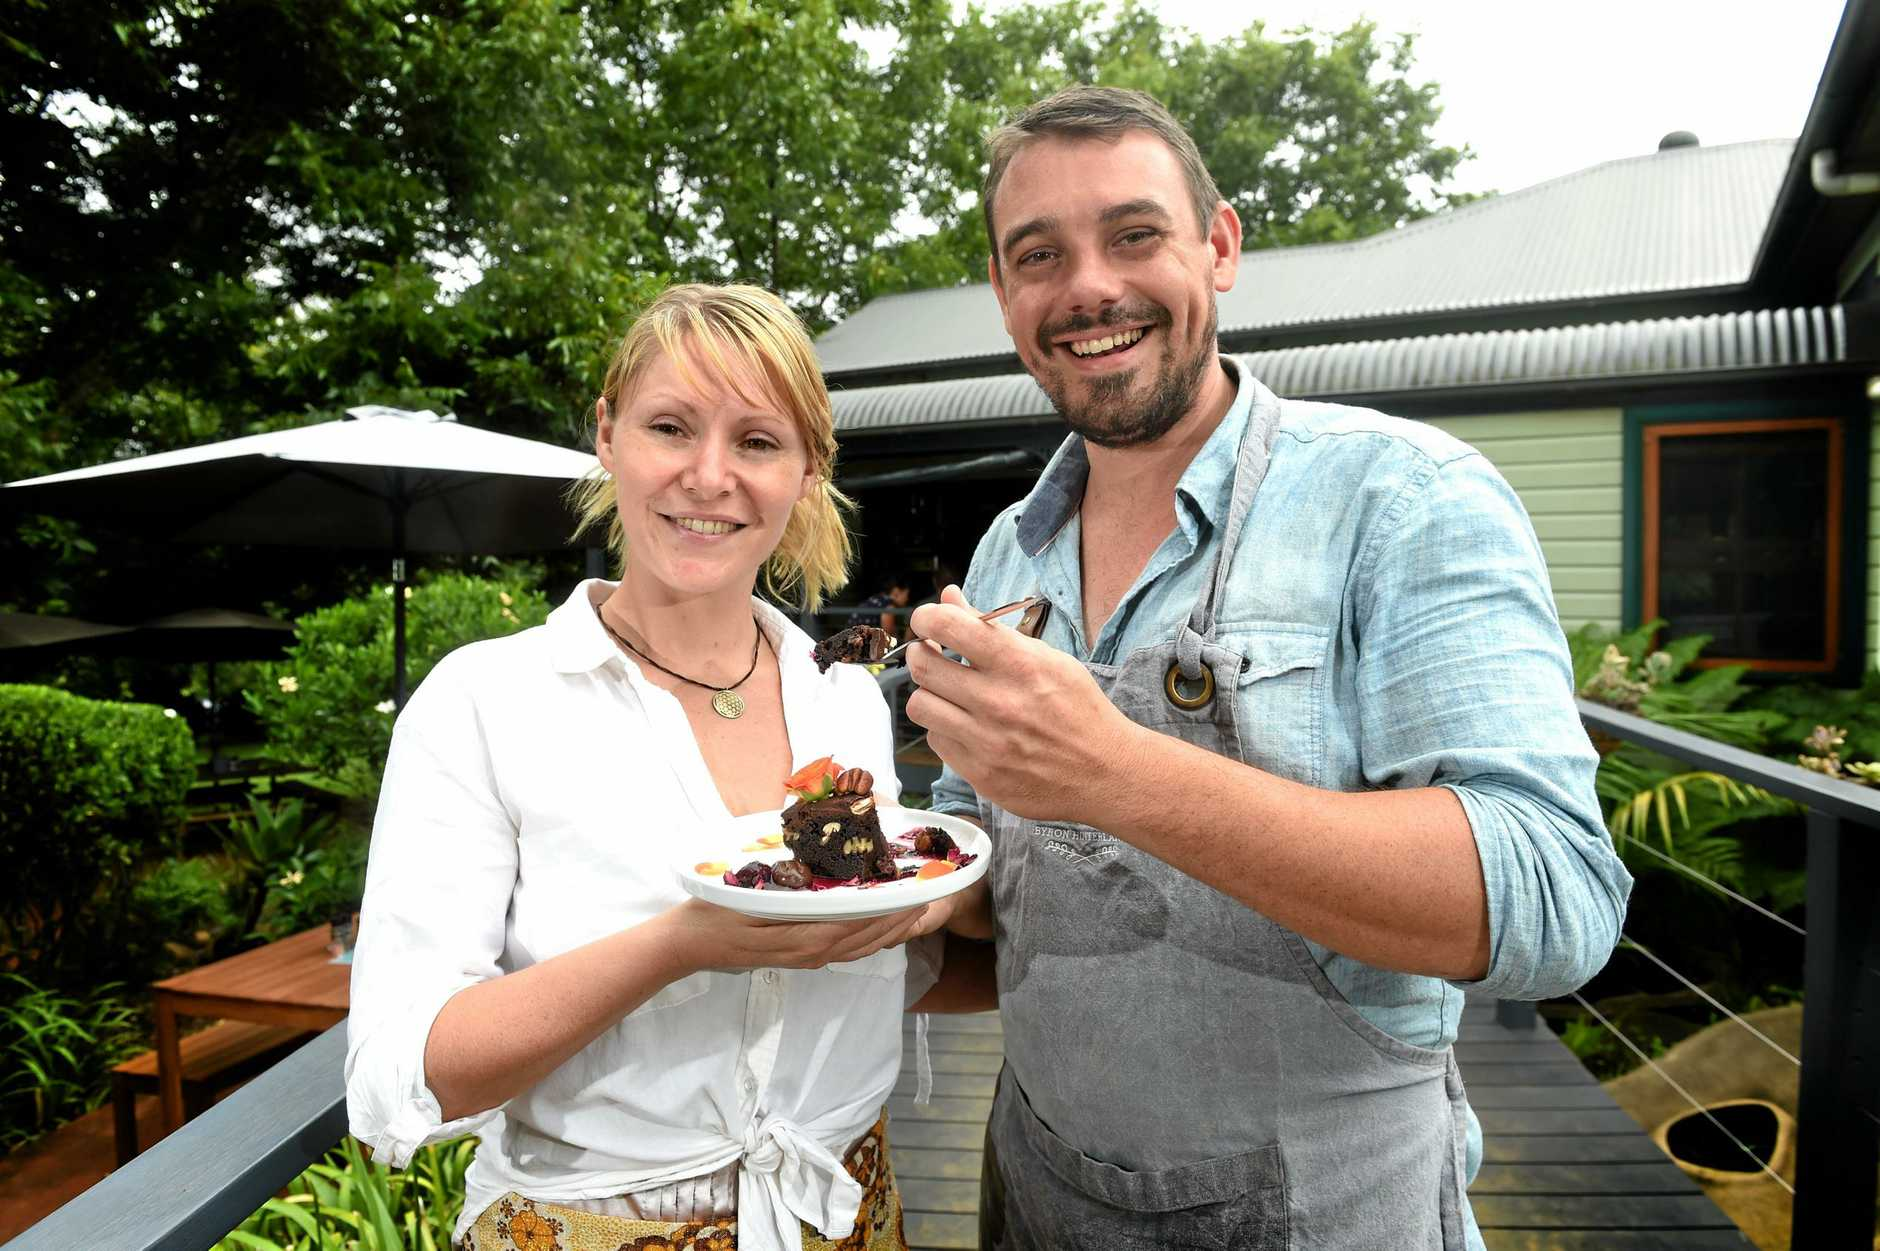 Eltham Pantry owners Matthew James and Ashlee Jones are looking forward to the festive atmosphere and community spirit found at Eat the Street in Lismore.